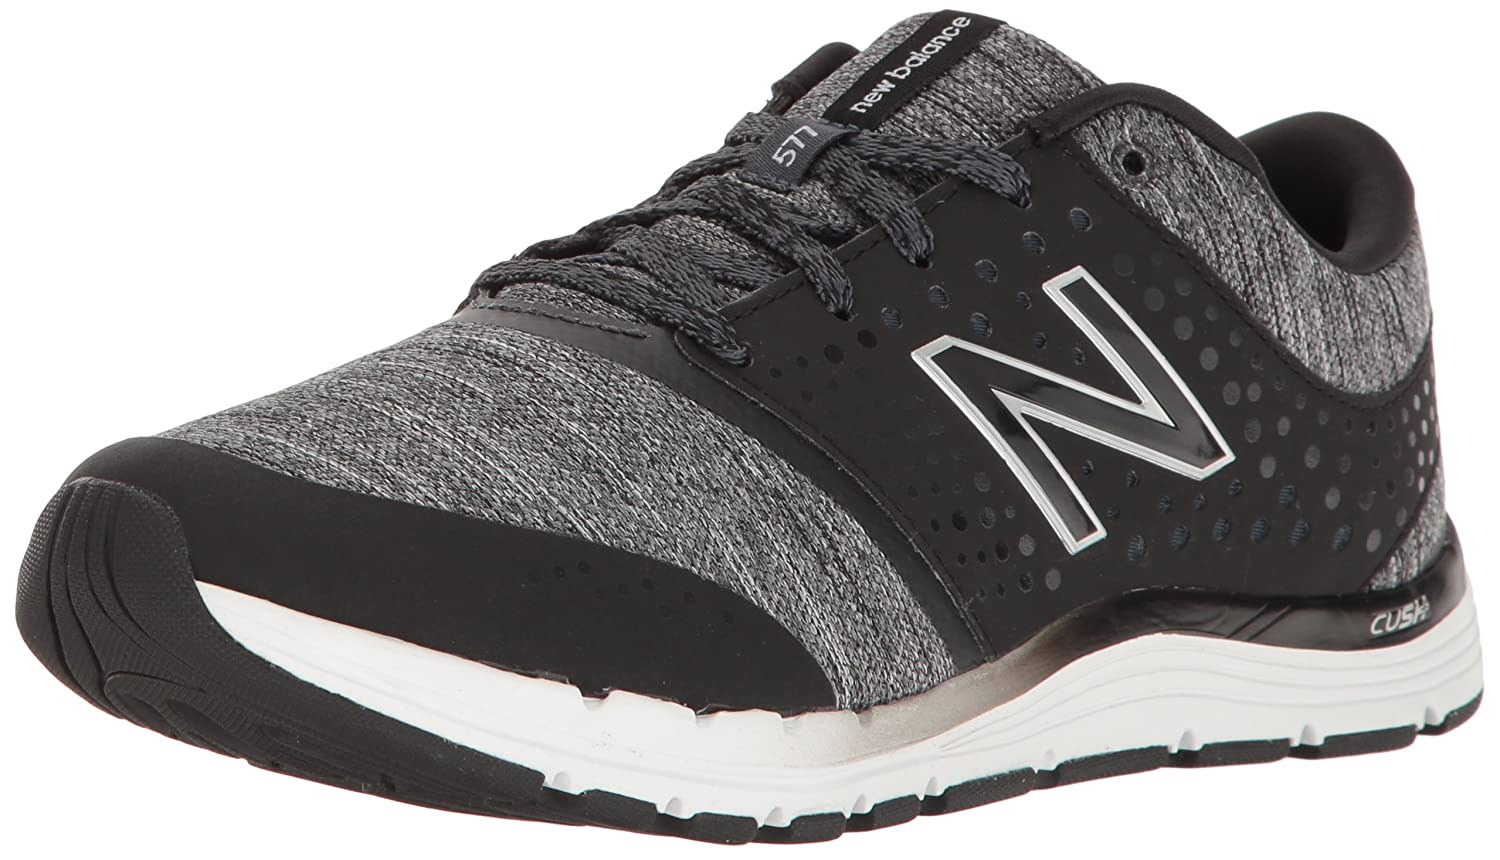 New Balance Women's WX577V4 CUSH + Training Shoe B01FSIO53G 11 D US|Black/Heather